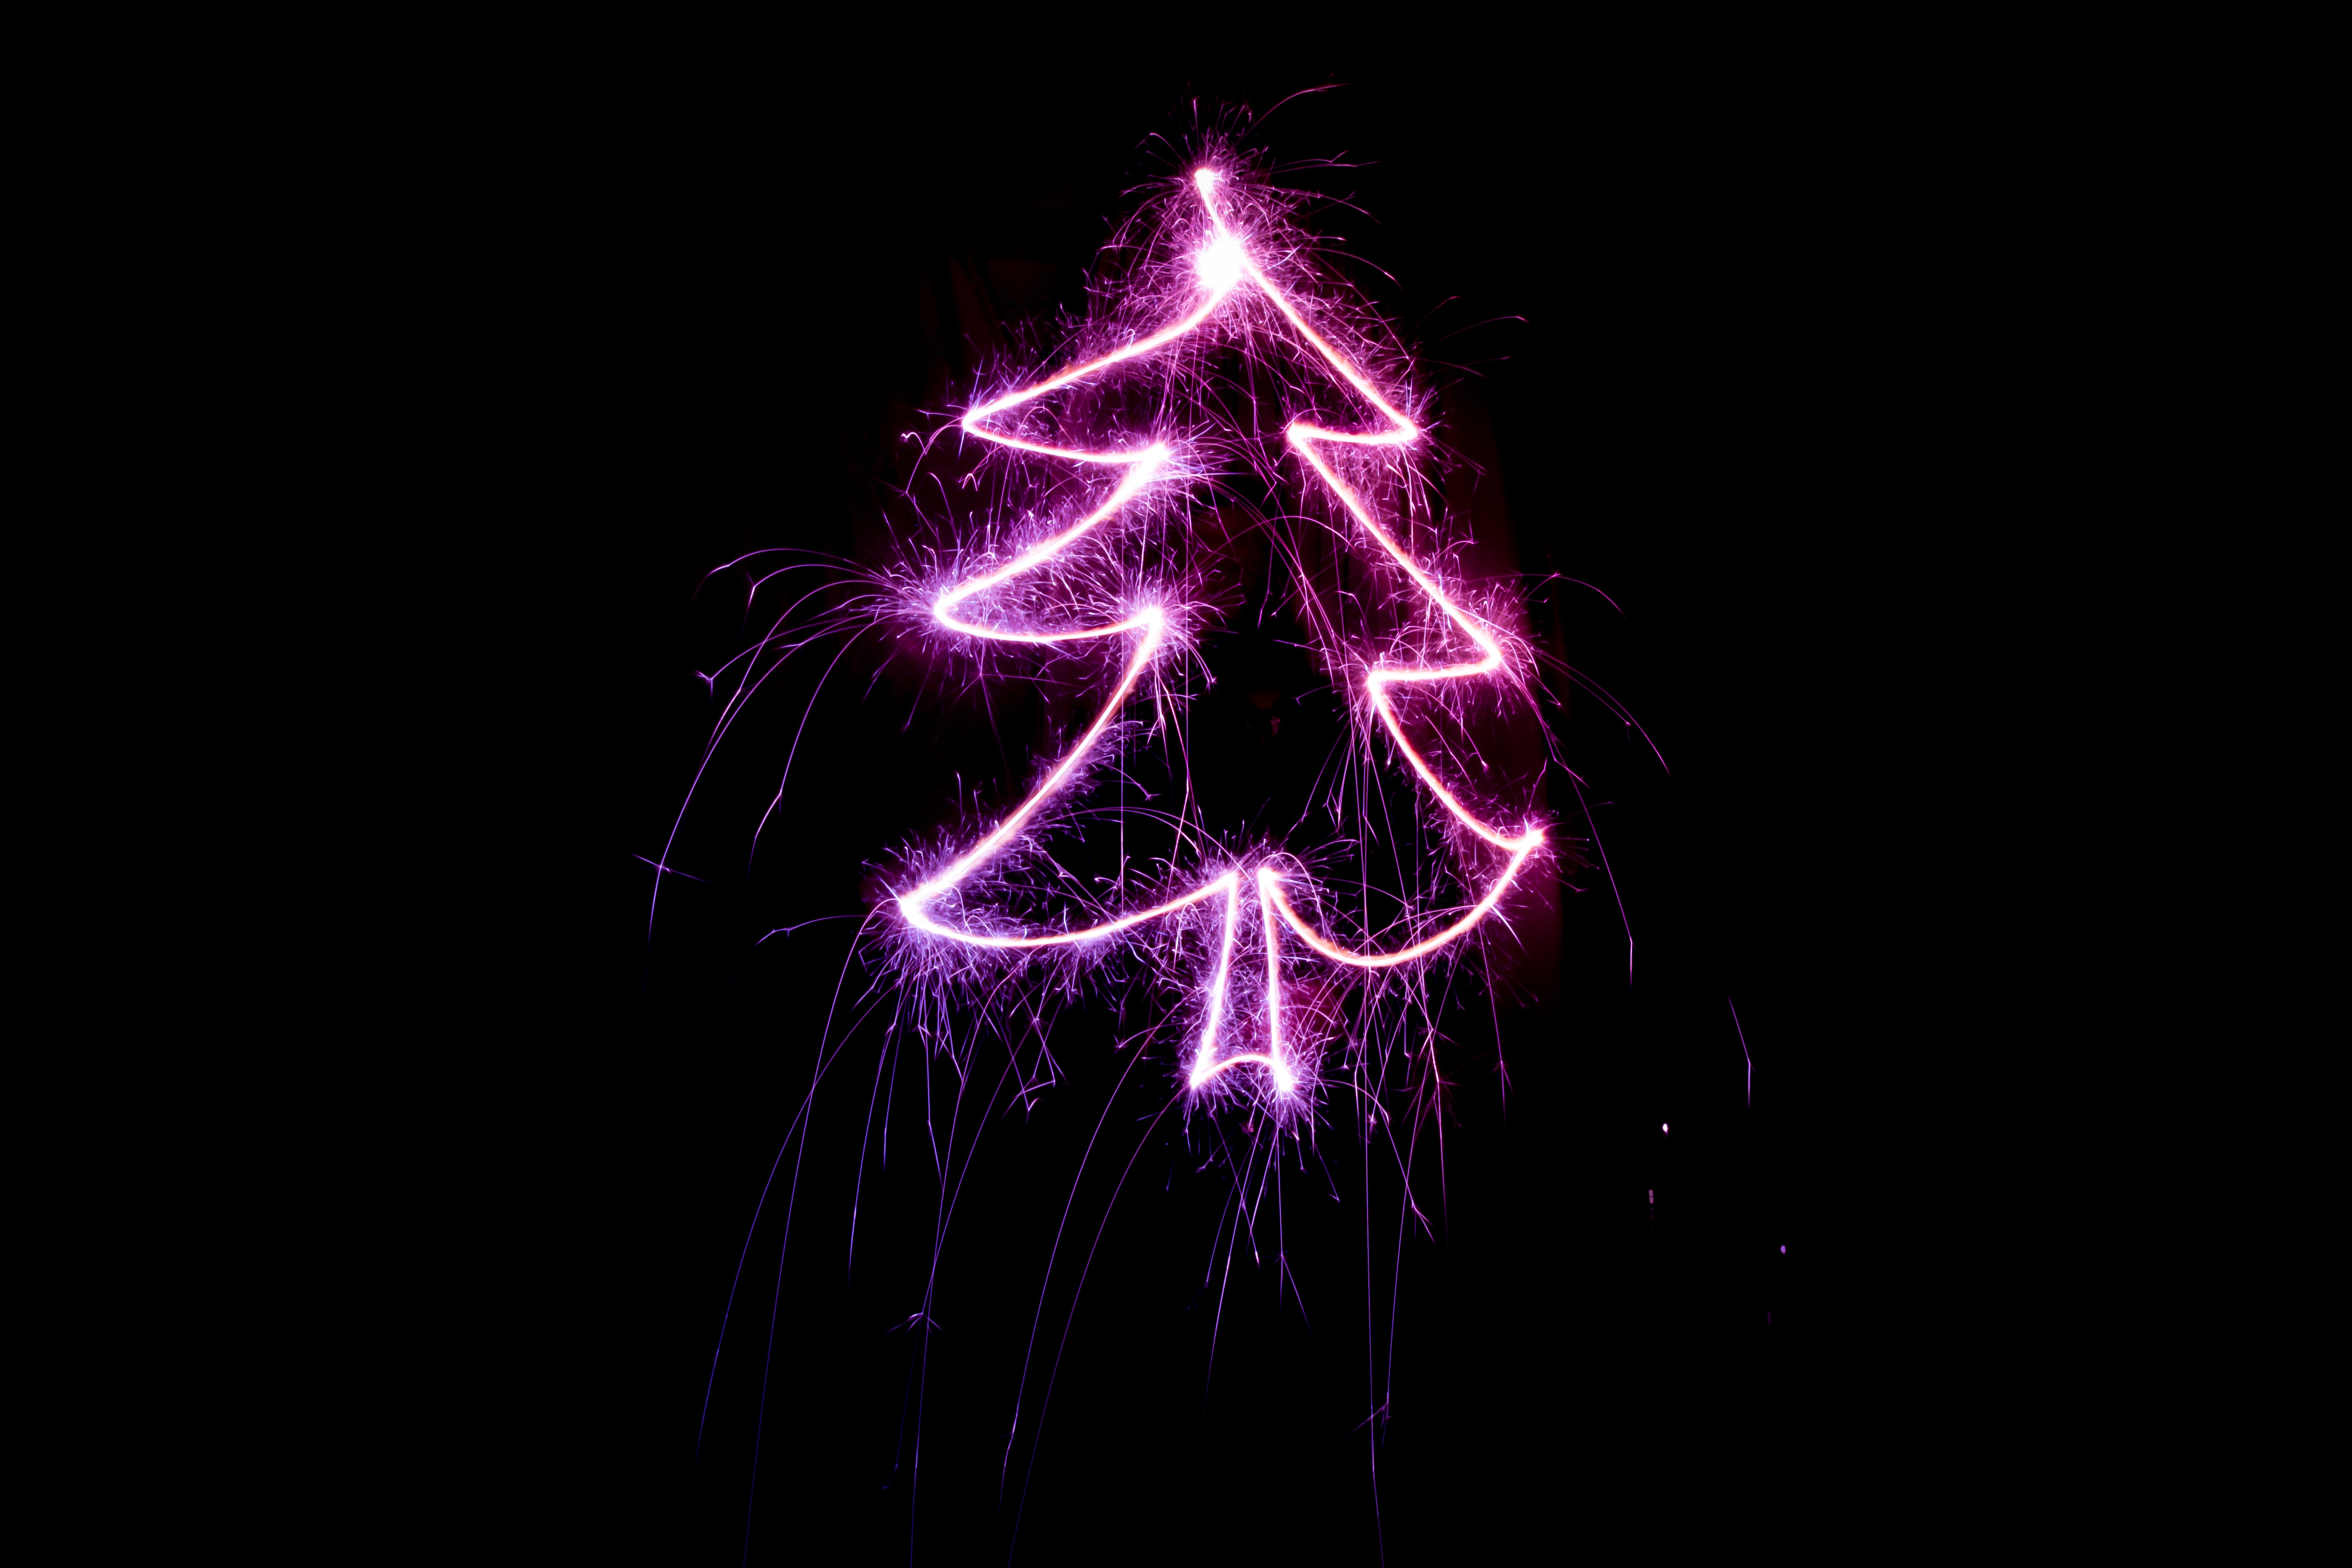 152476 download wallpaper Holidays, Art, Shine, Light, Sparks, Christmas Tree screensavers and pictures for free